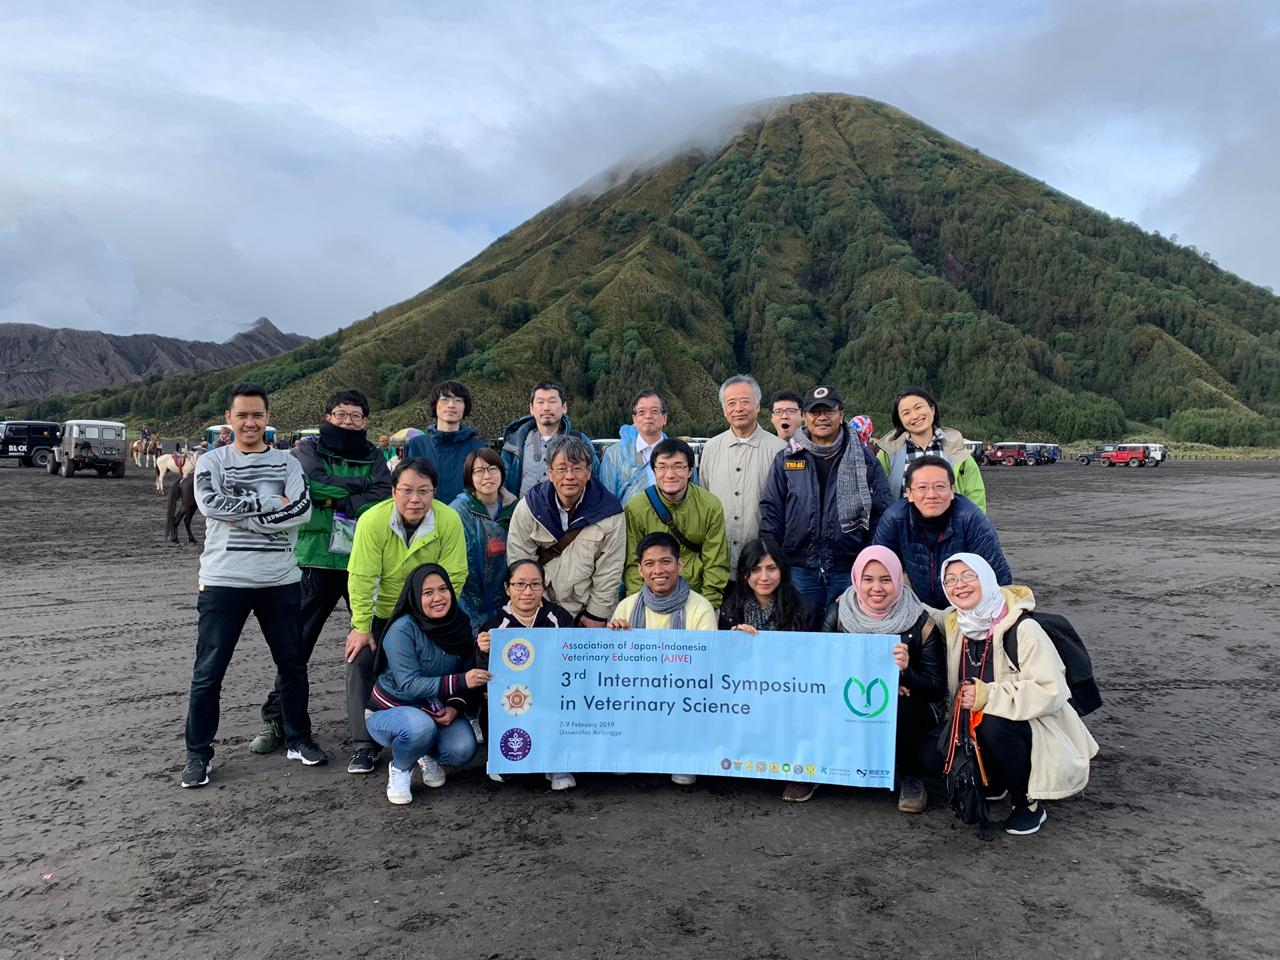 Special Event to Bromo Mountain bersama rombongan FKH UNAIR dan Tamu Association of Japan-Indonesia Veterinary Education (AJIVE) dari Jepang